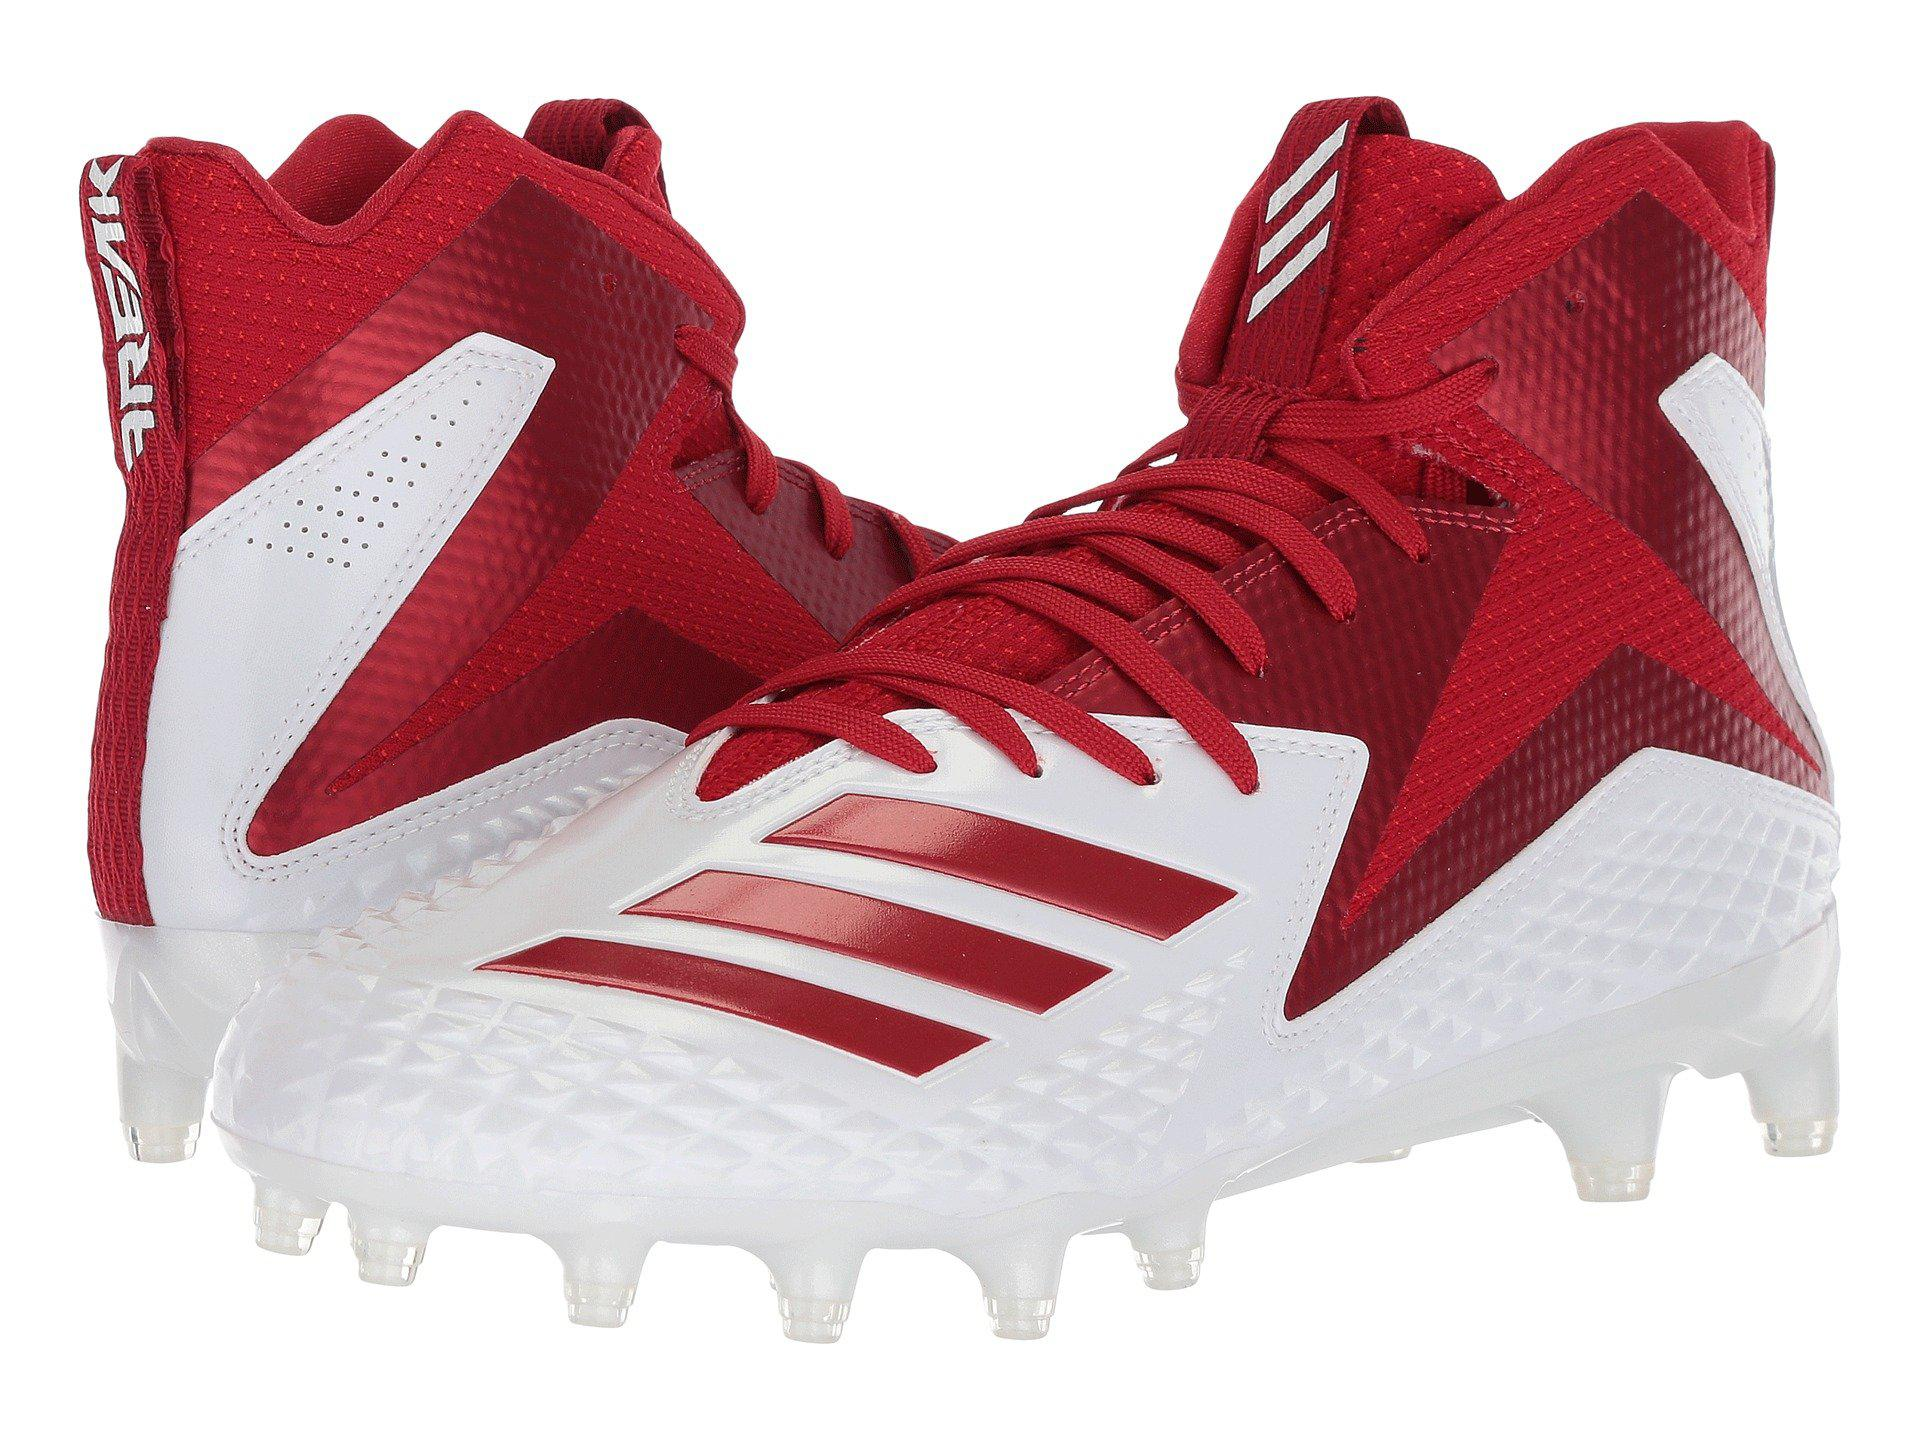 buy popular e6afc 91301 adidas. Freak X Carbon Mid (footwear Whitepower Redpower Red) Mens Shoes